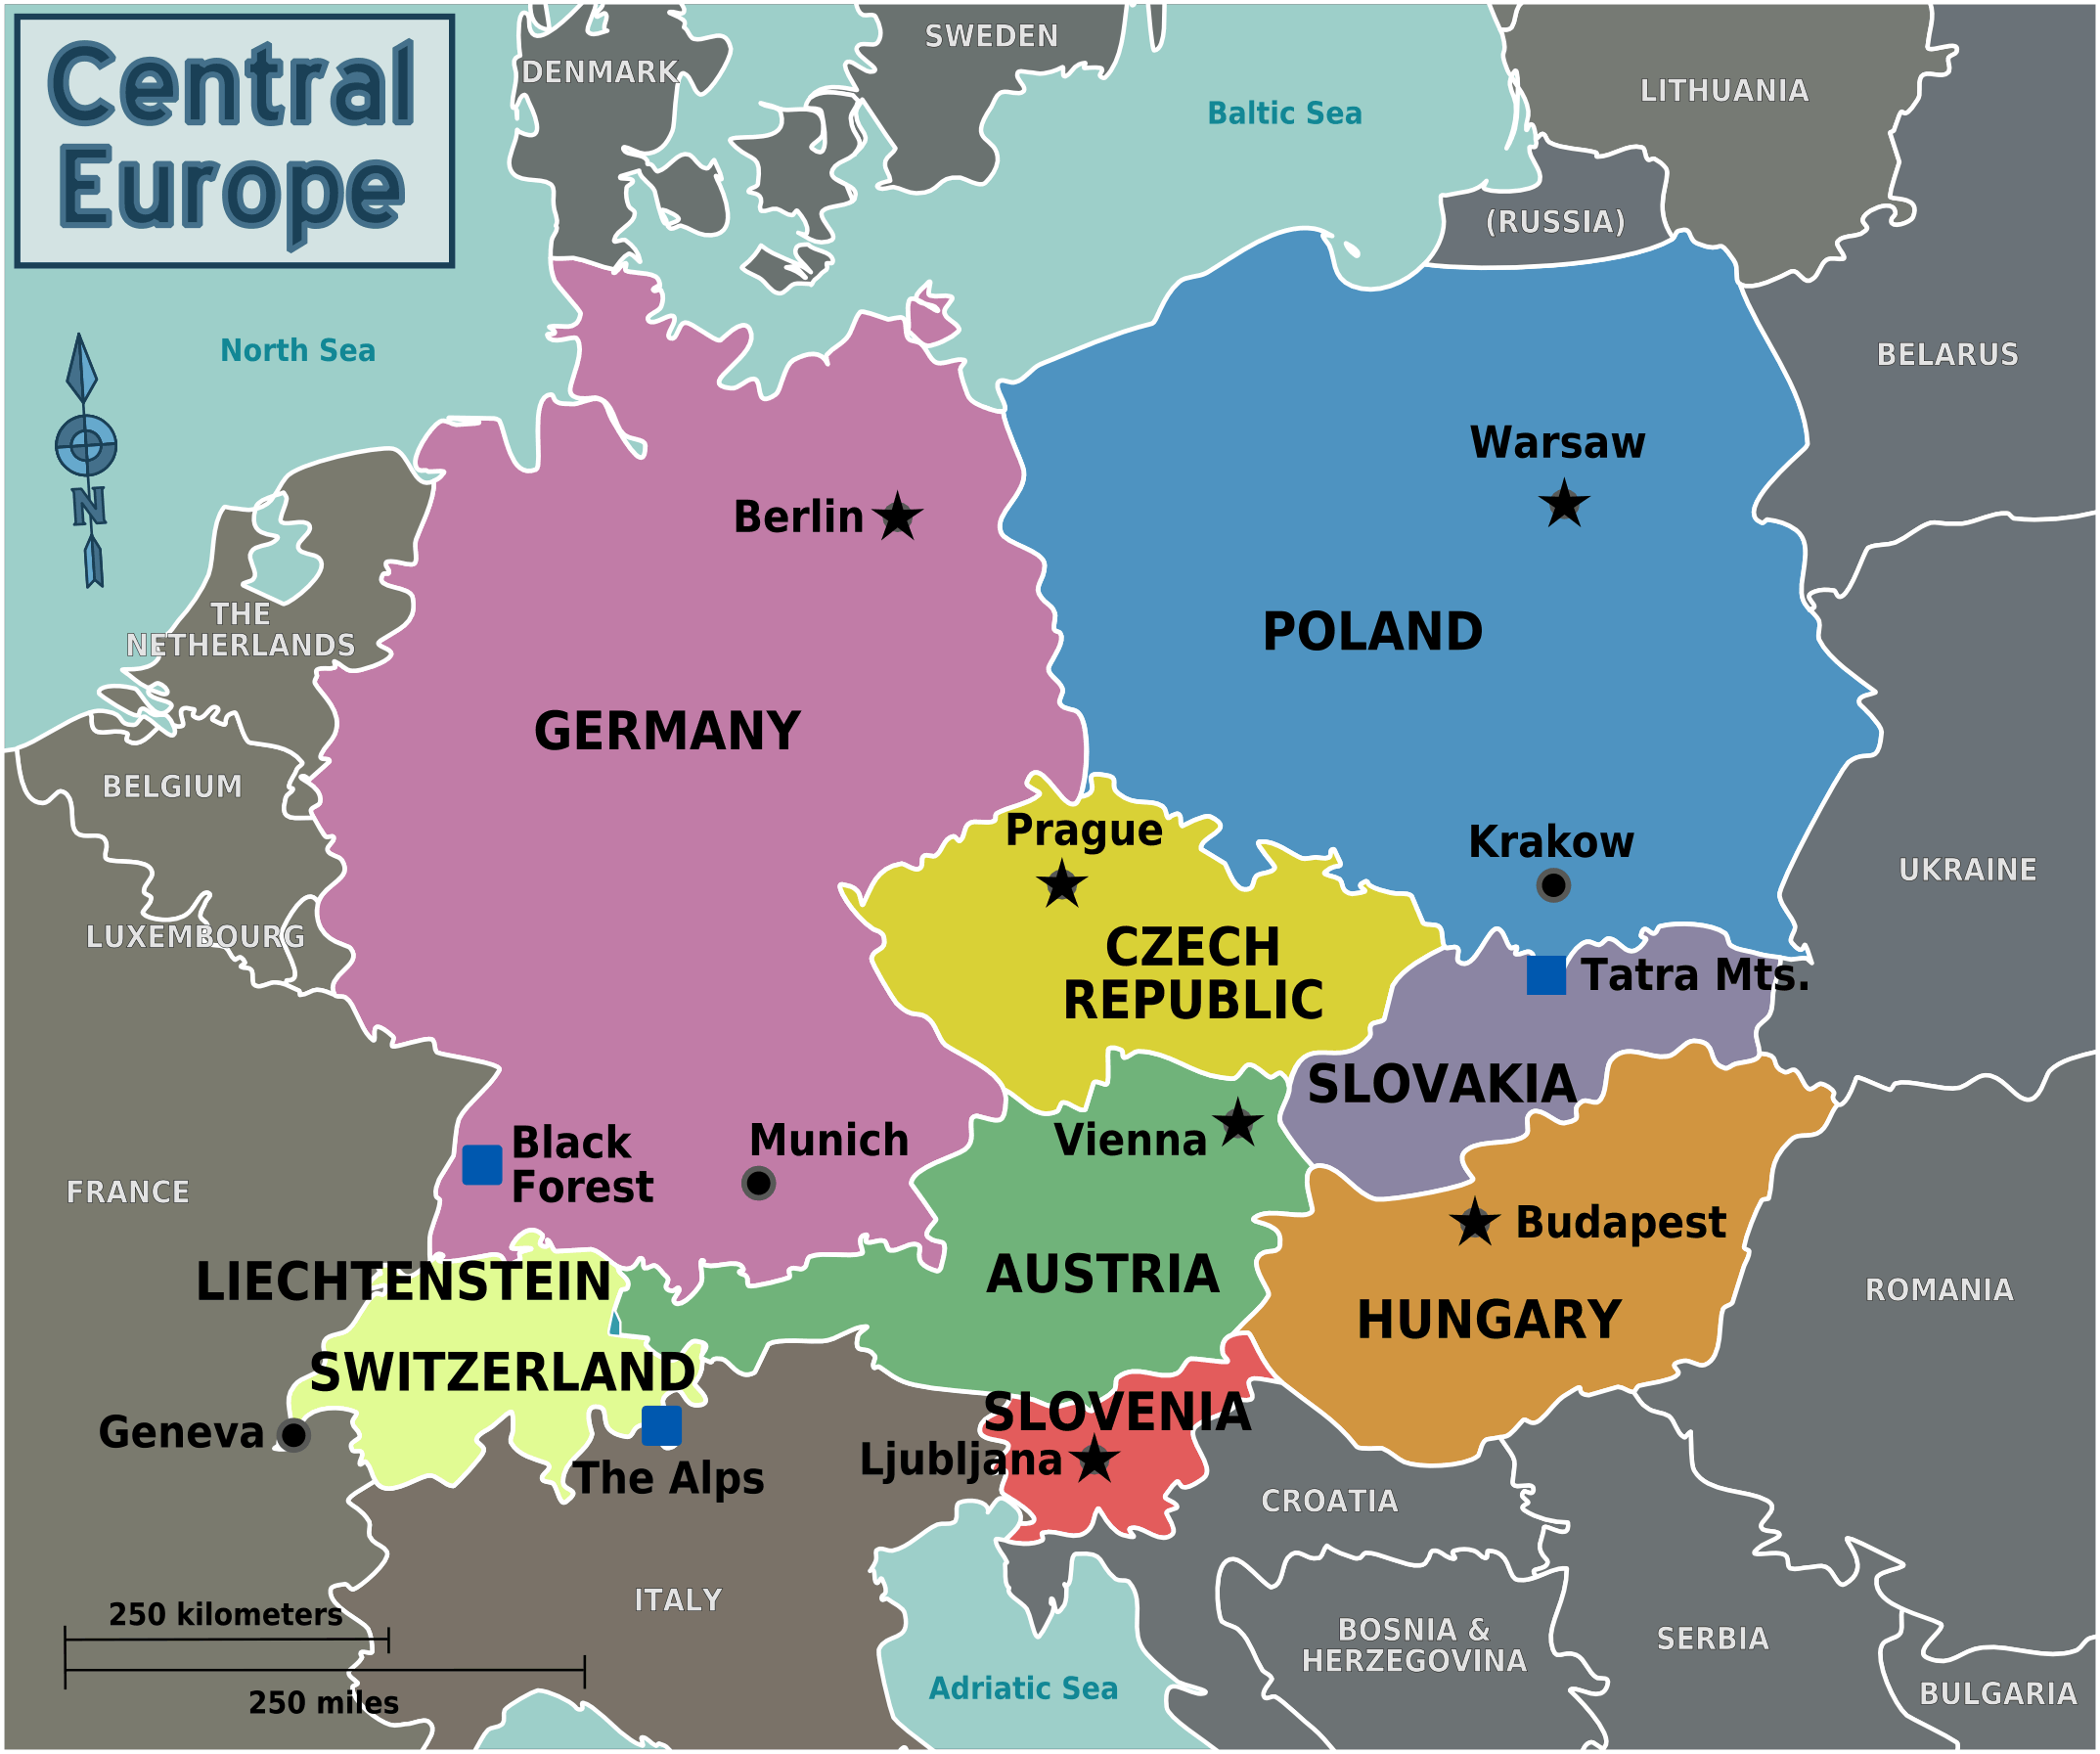 map of central europe with capitals for each country